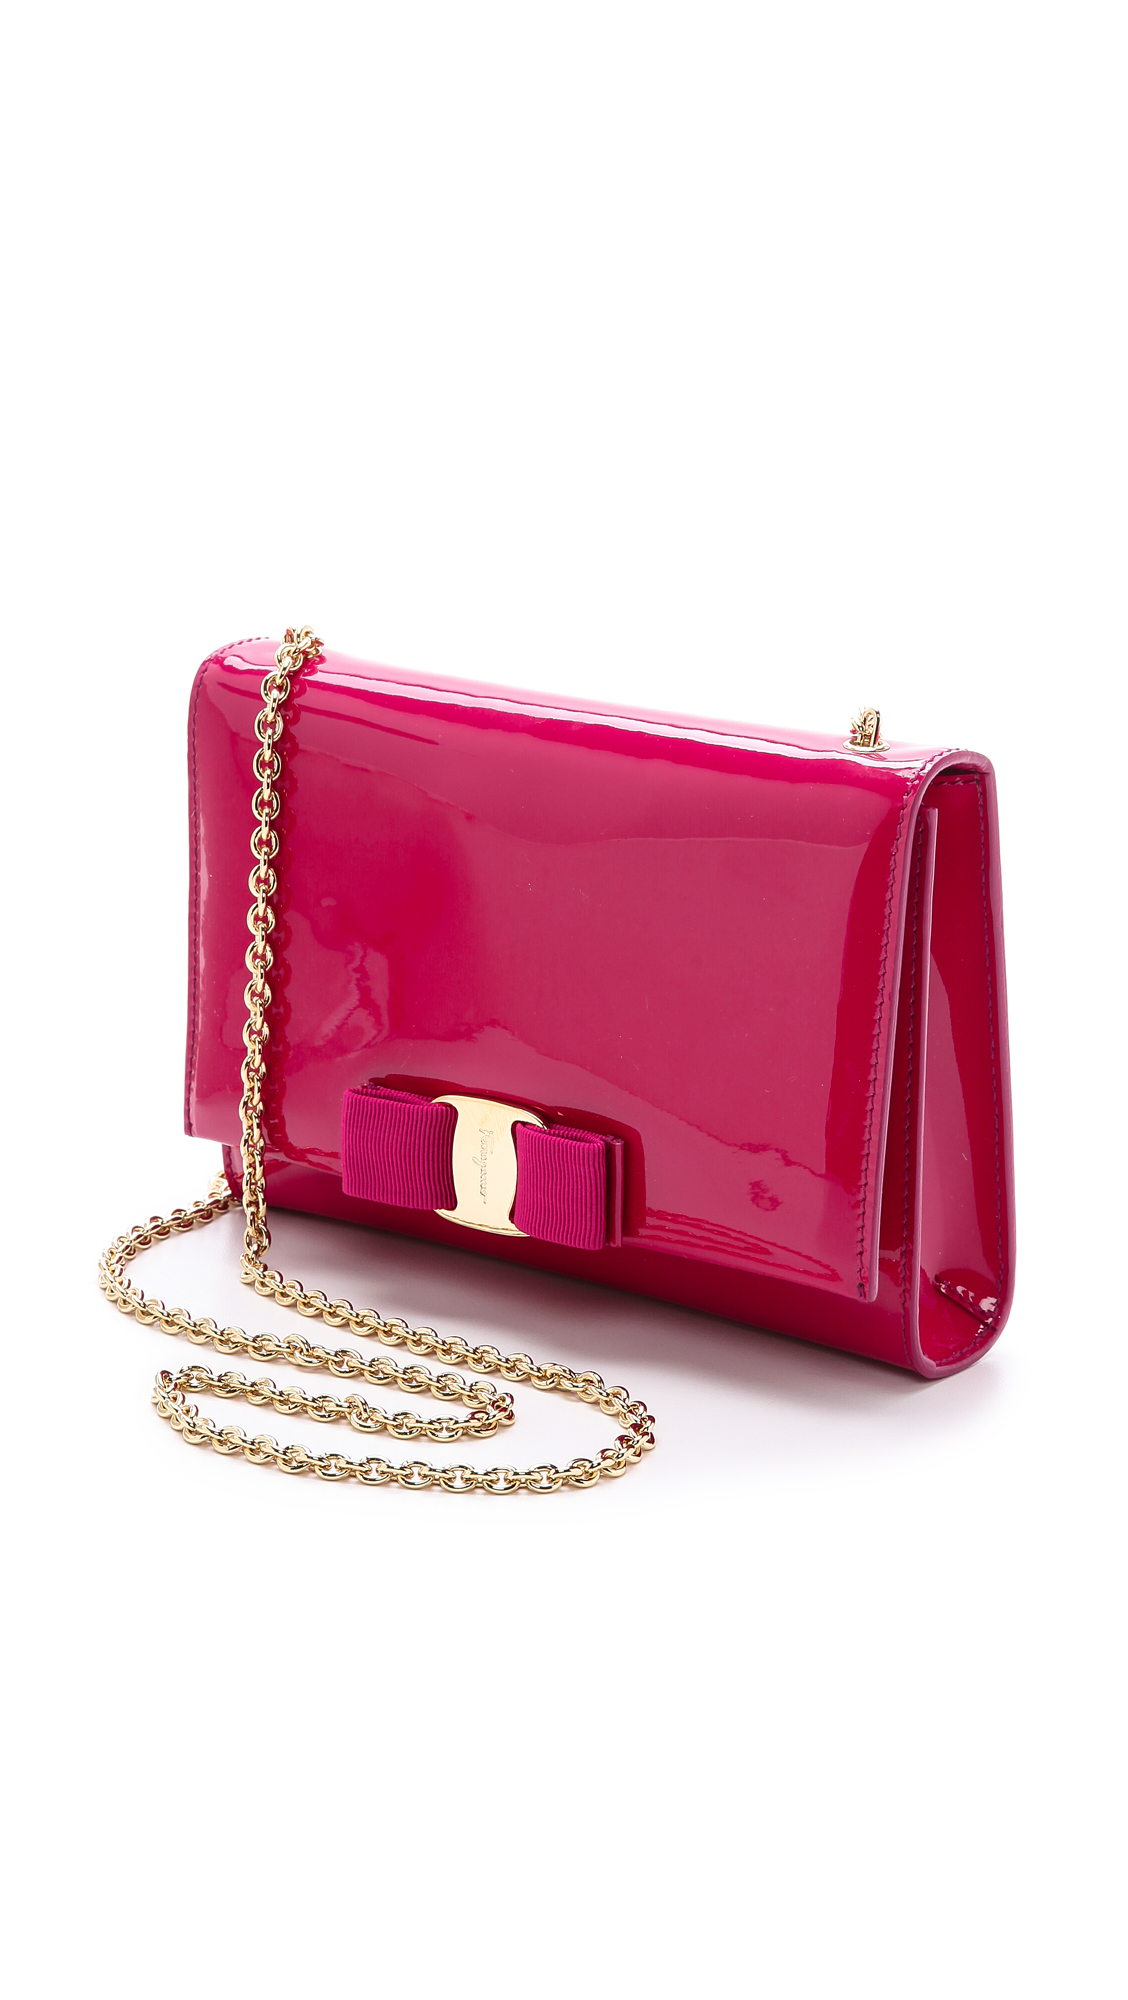 Ferragamo Miss Vara Bow Patent Shoulder Bag in Pink (Agata Rosa ...